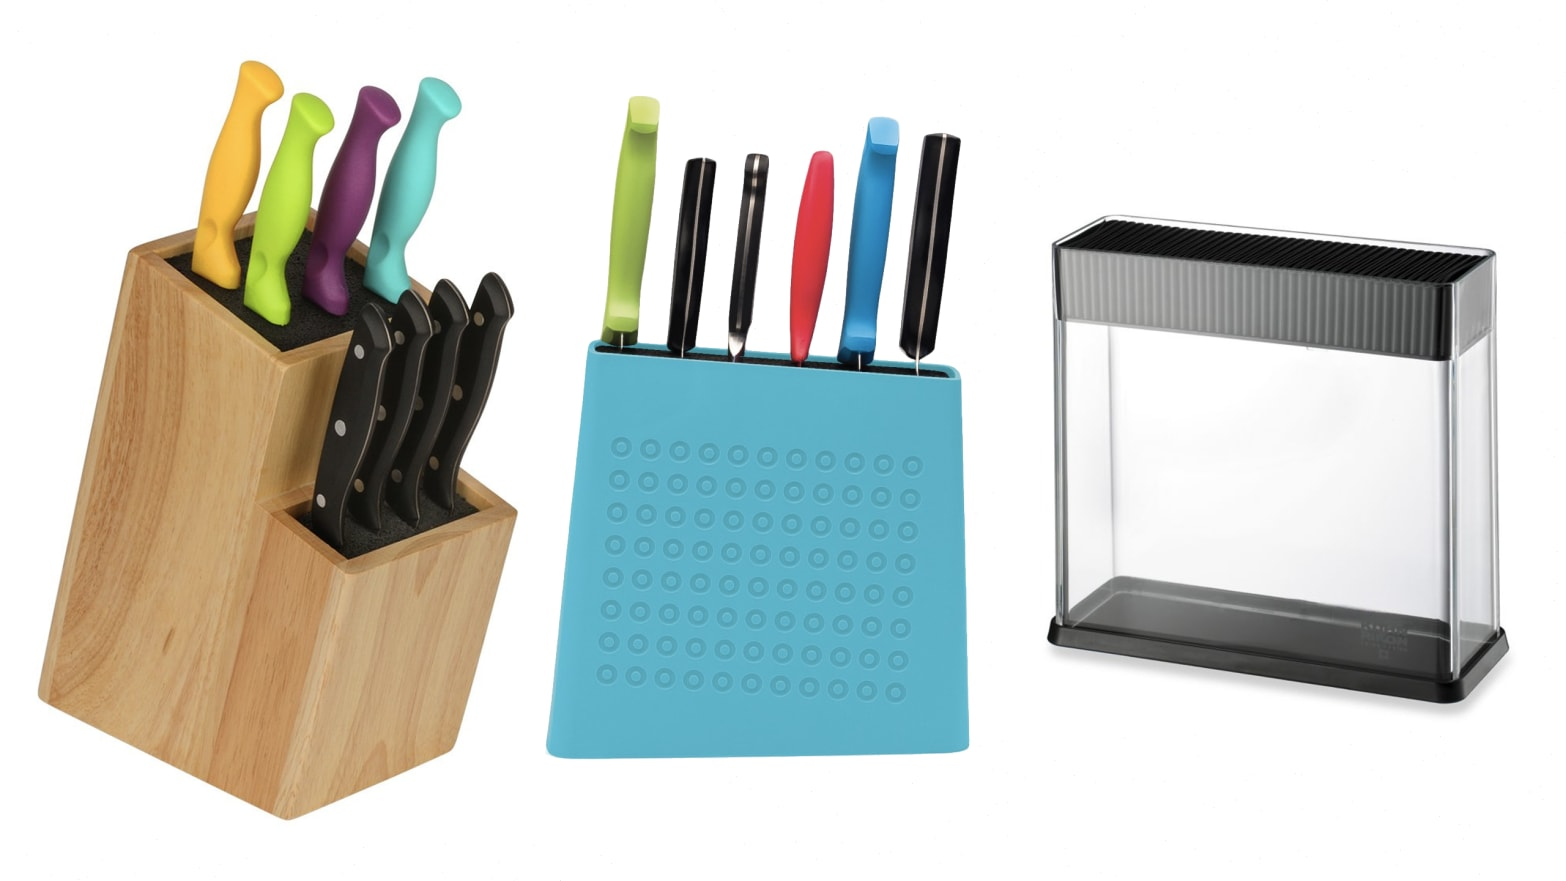 Universal Knife Blocks For Your Kitchen